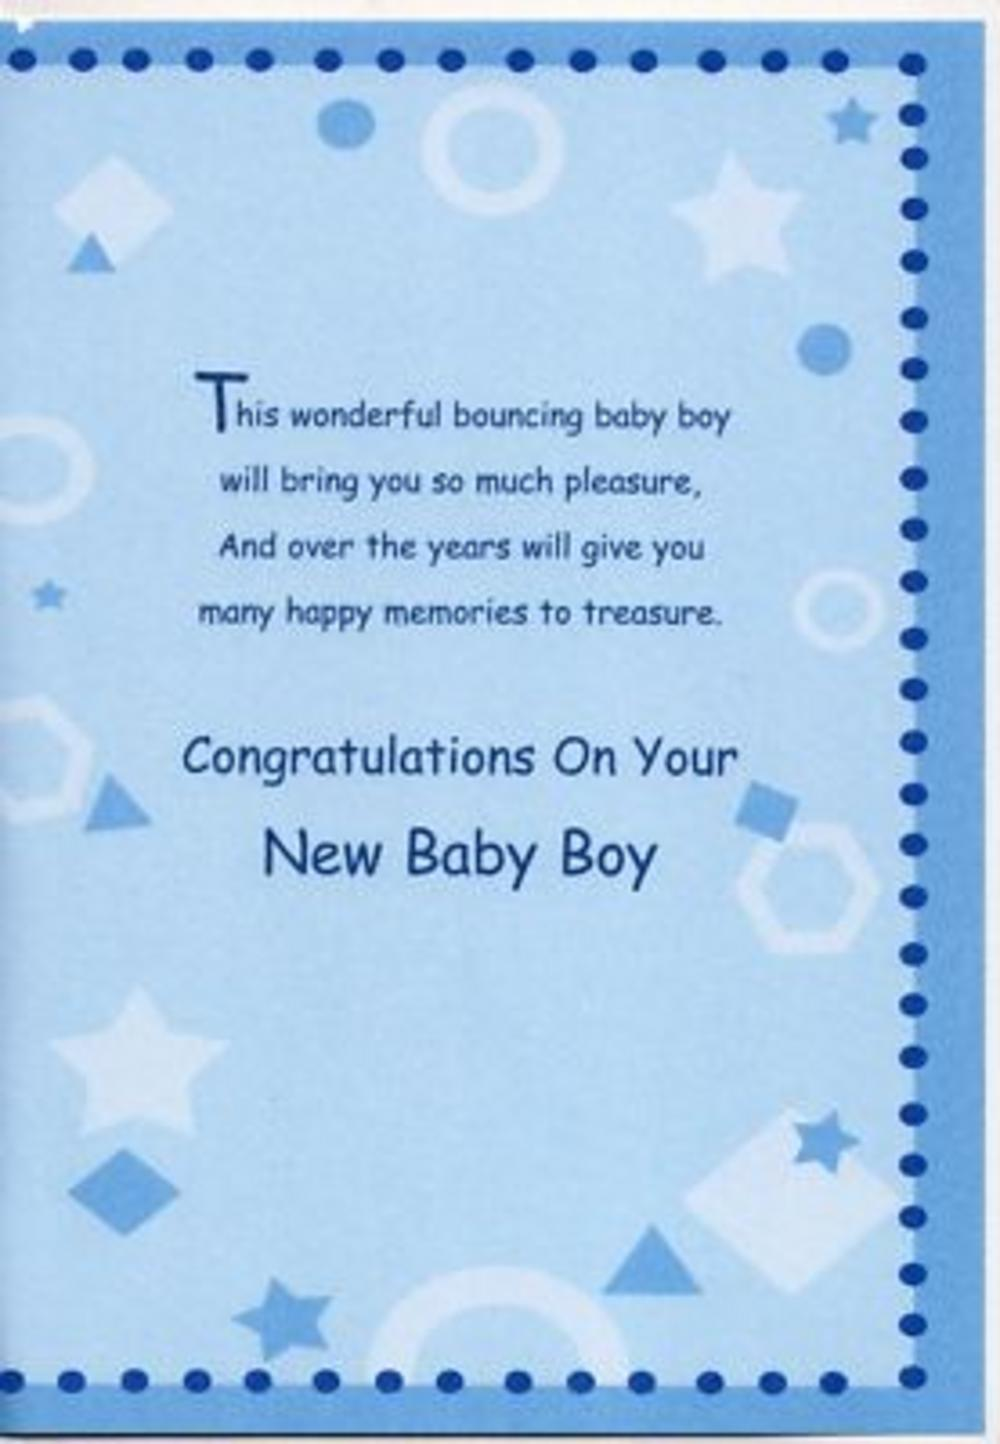 New baby wishes card roho4senses new baby wishes card m4hsunfo